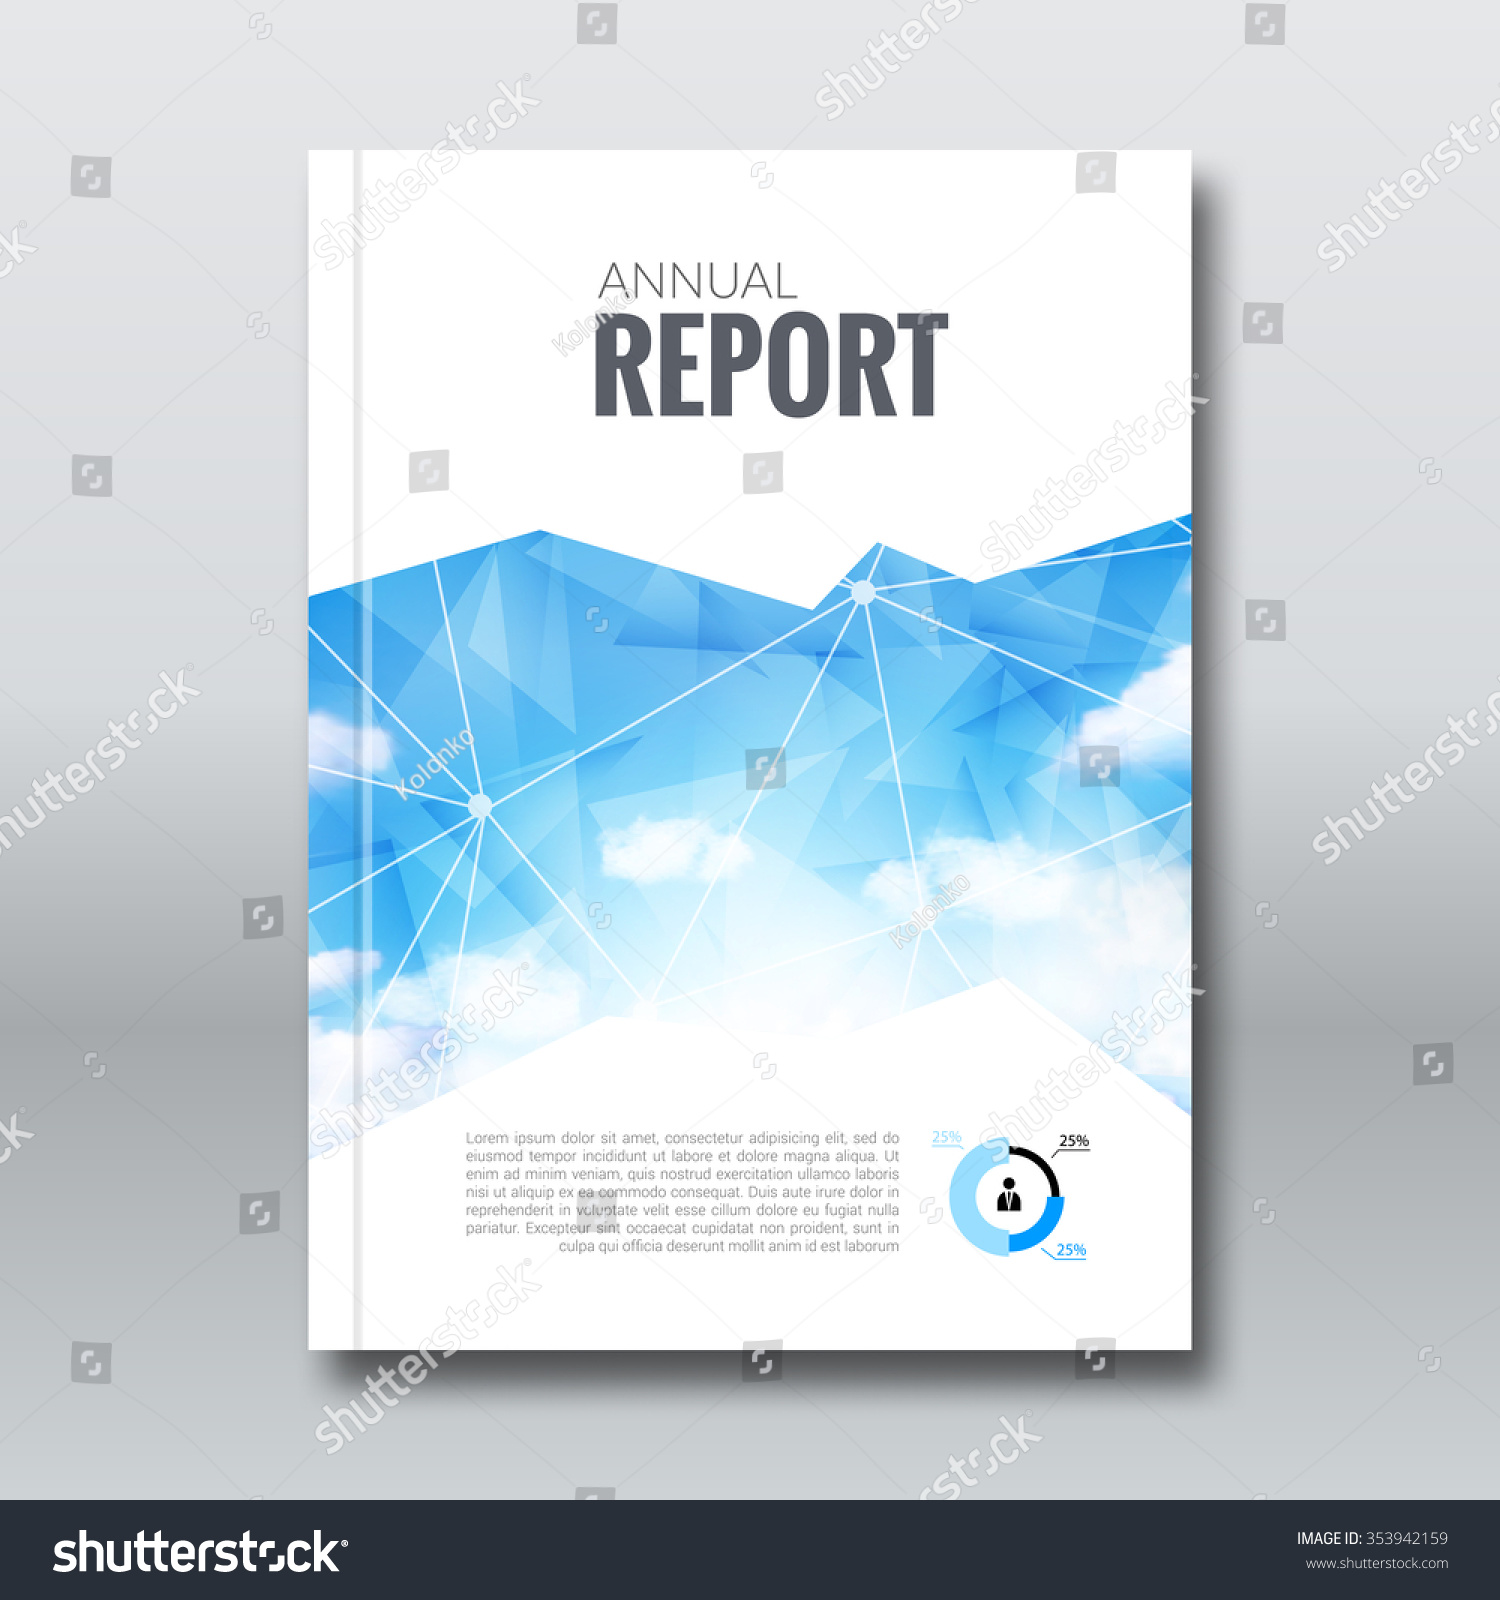 report cover template free template royaltyfree cover report – Business Report Cover Page